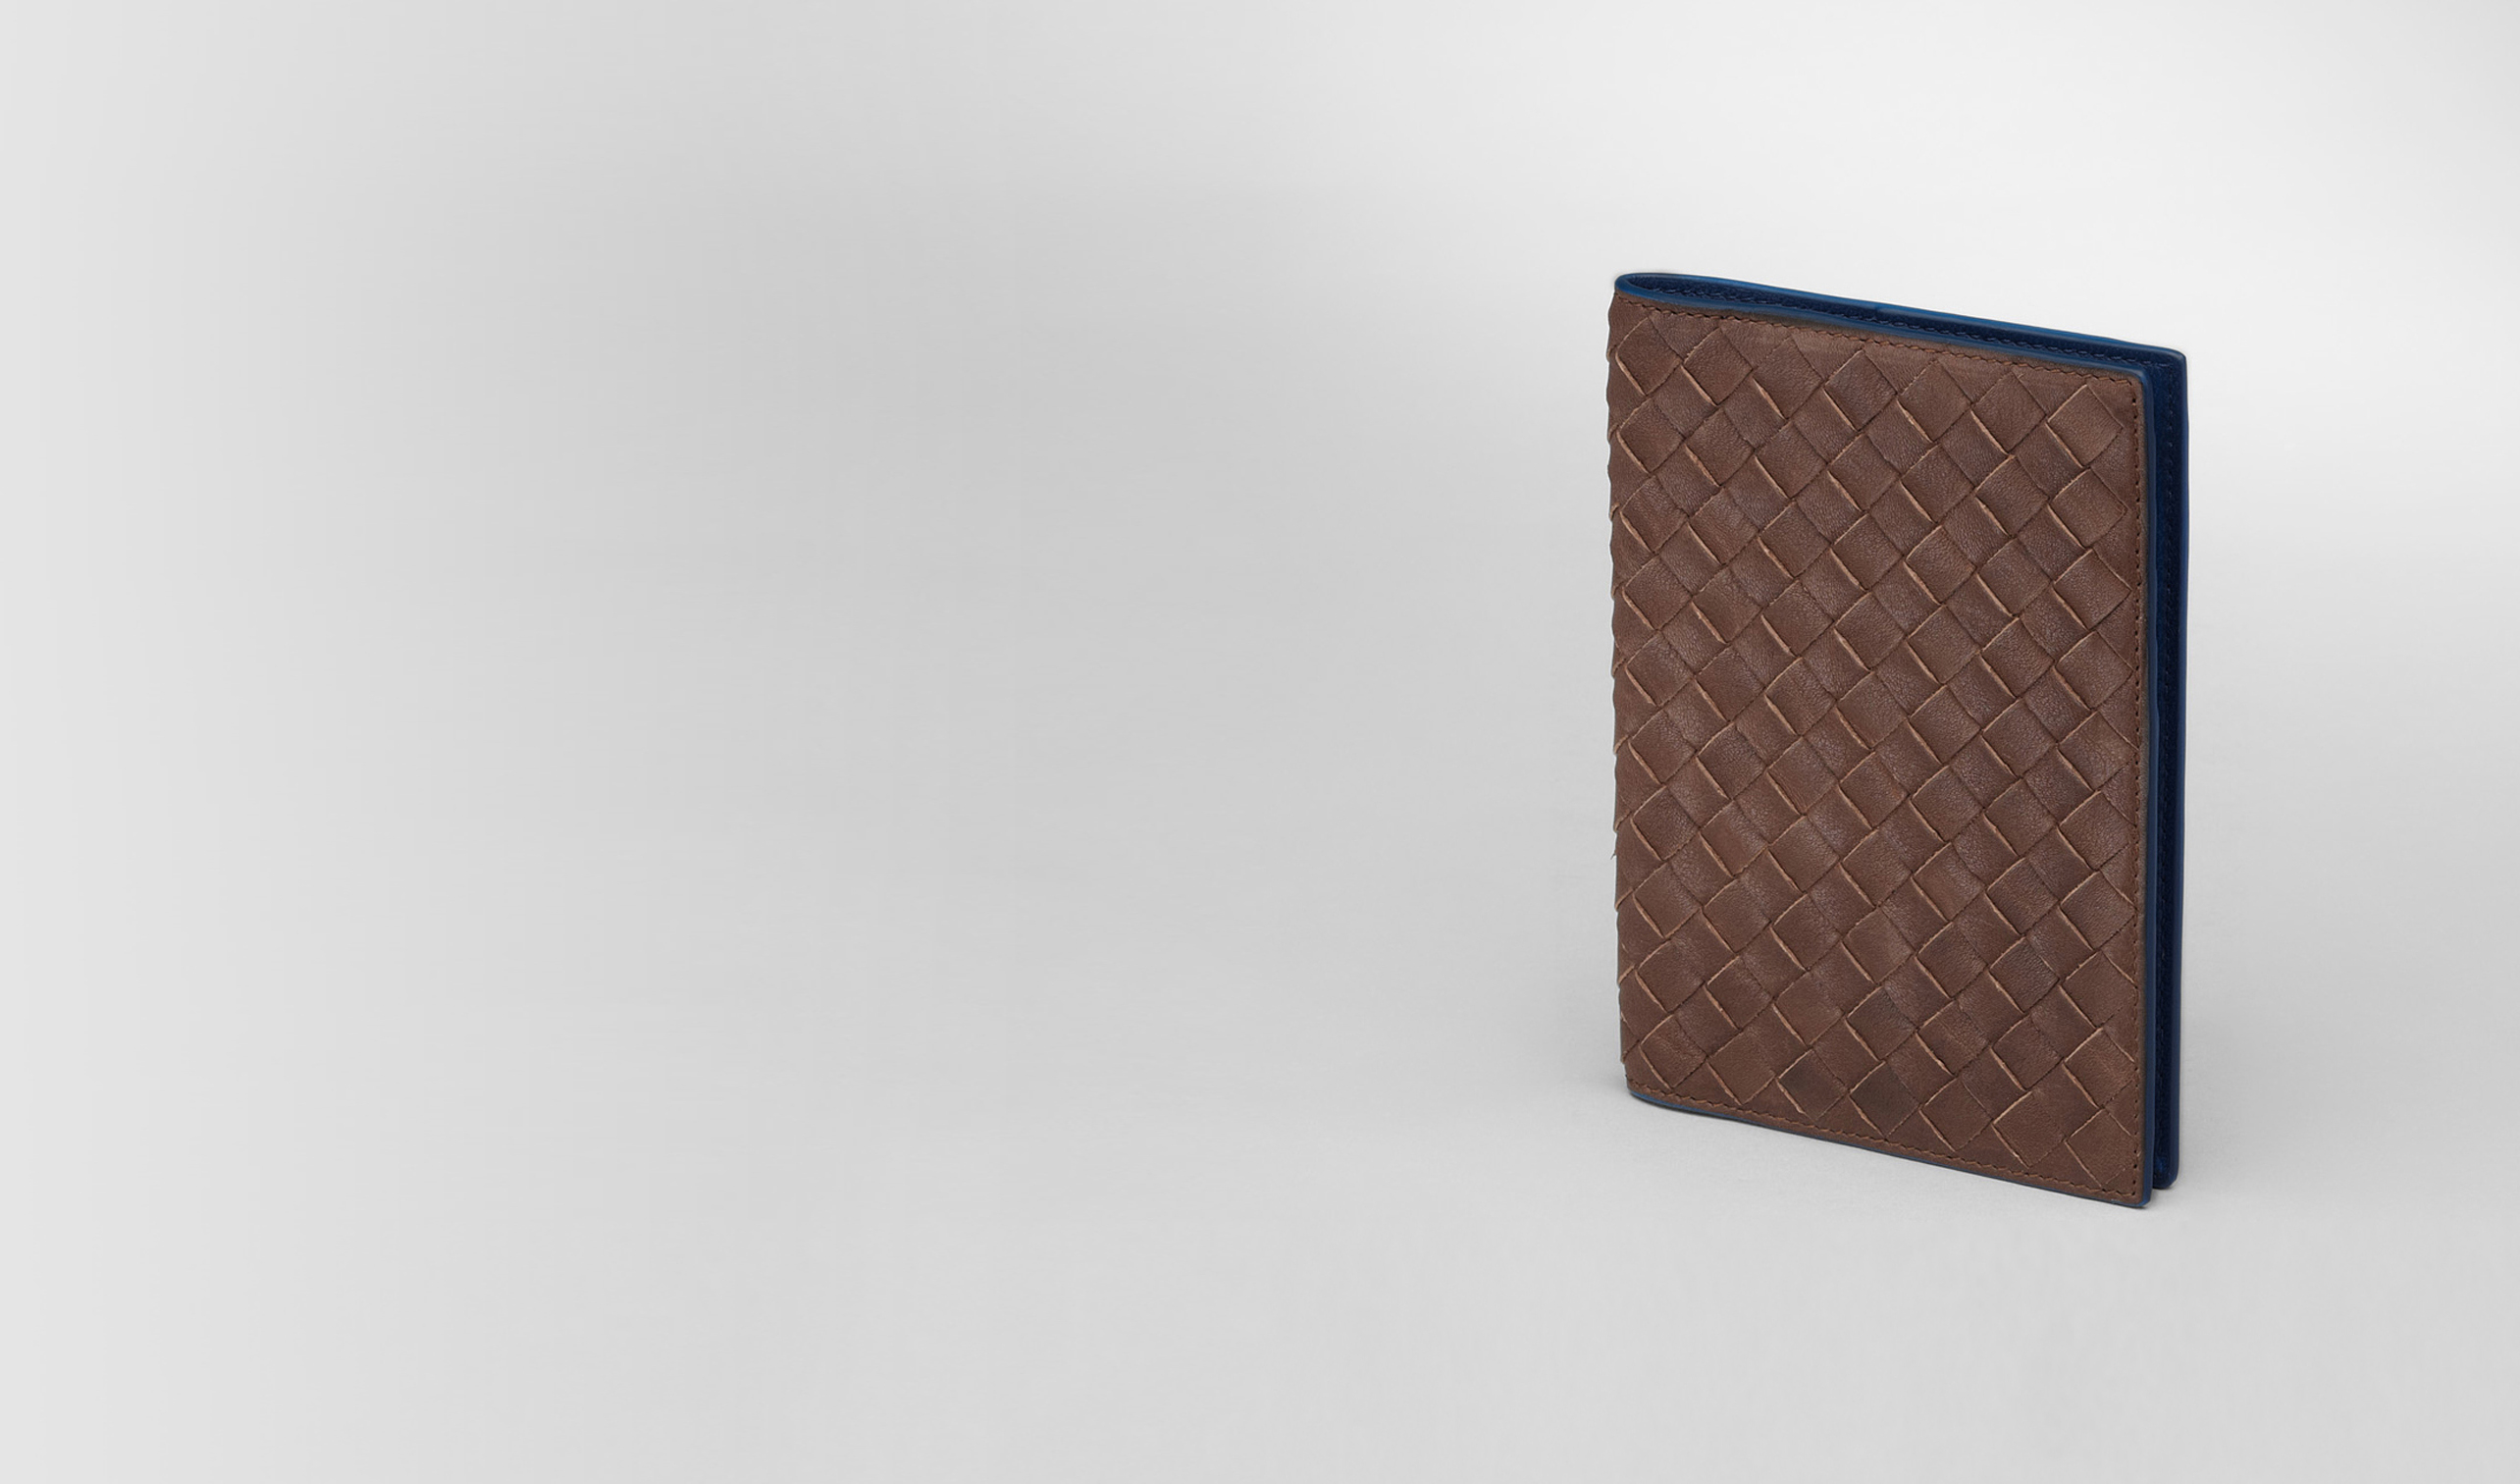 BOTTEGA VENETA Other Leather Accessory E Edoardo Électrique Intrecciato Washed Vintage Passport Case pl